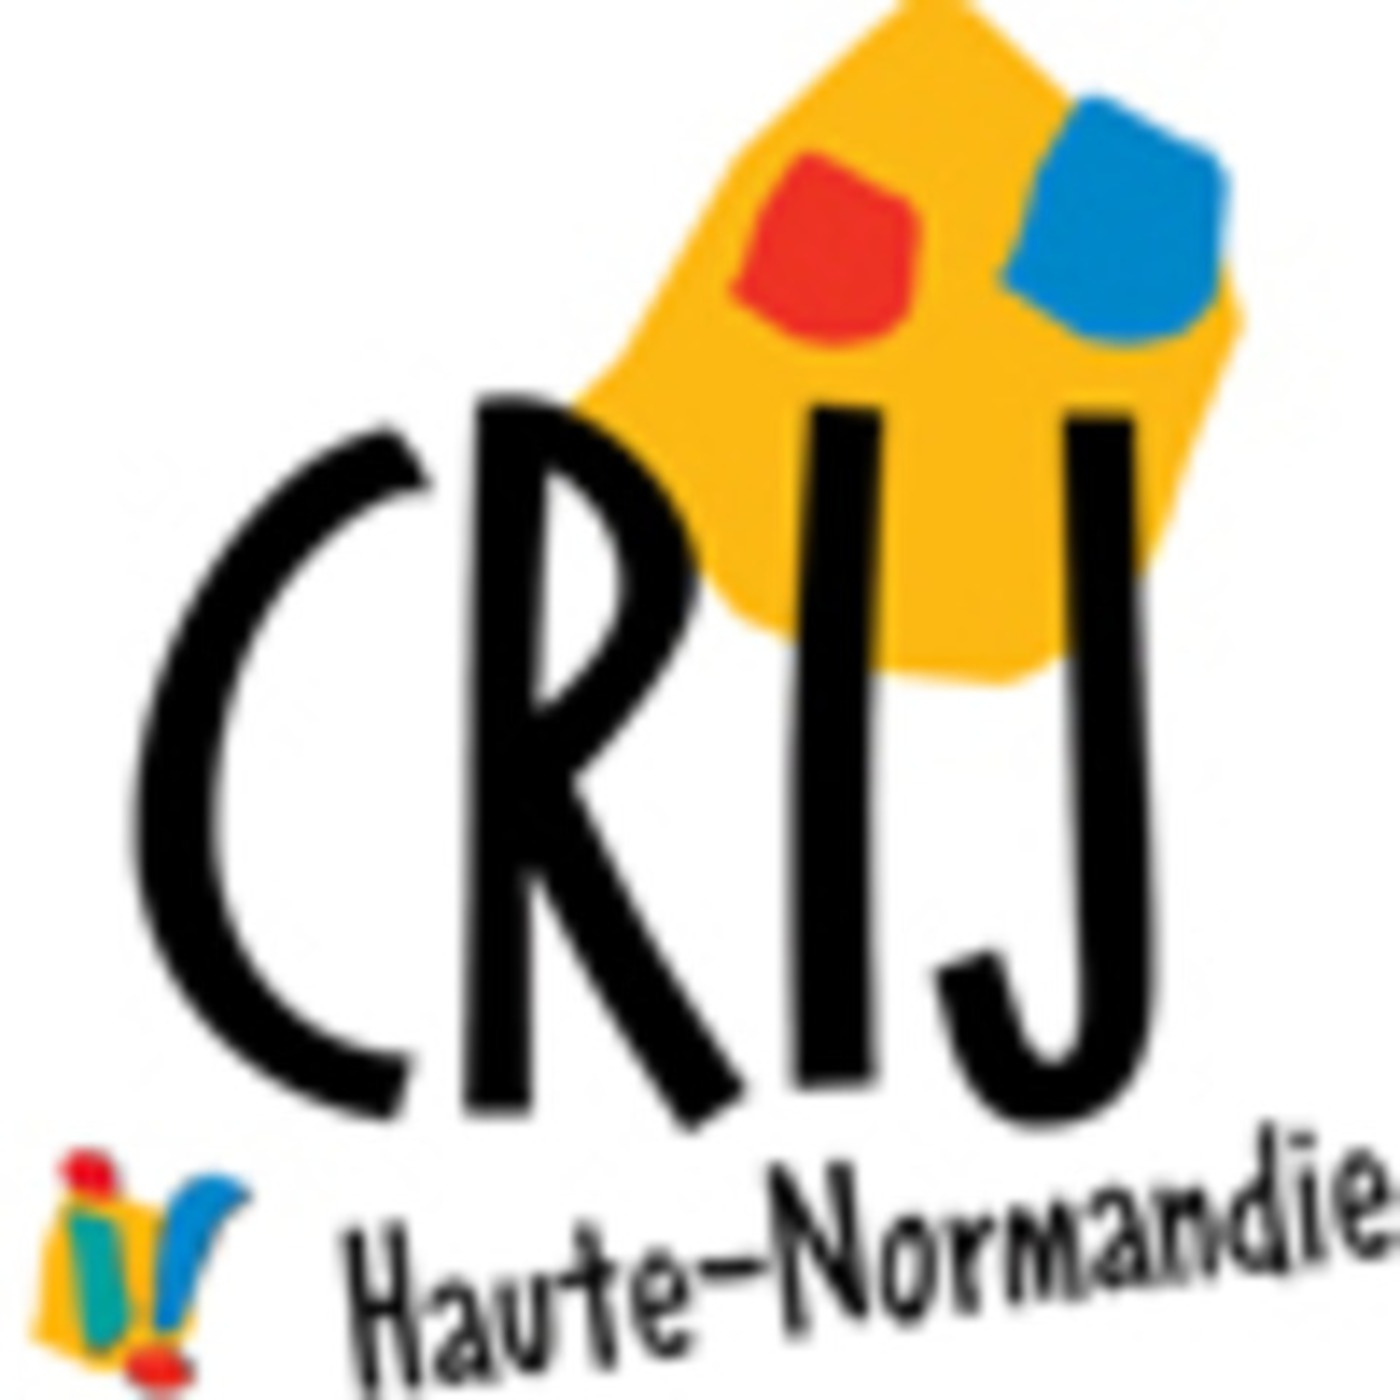 Les podcasts du CRIJ Haute-Normandie